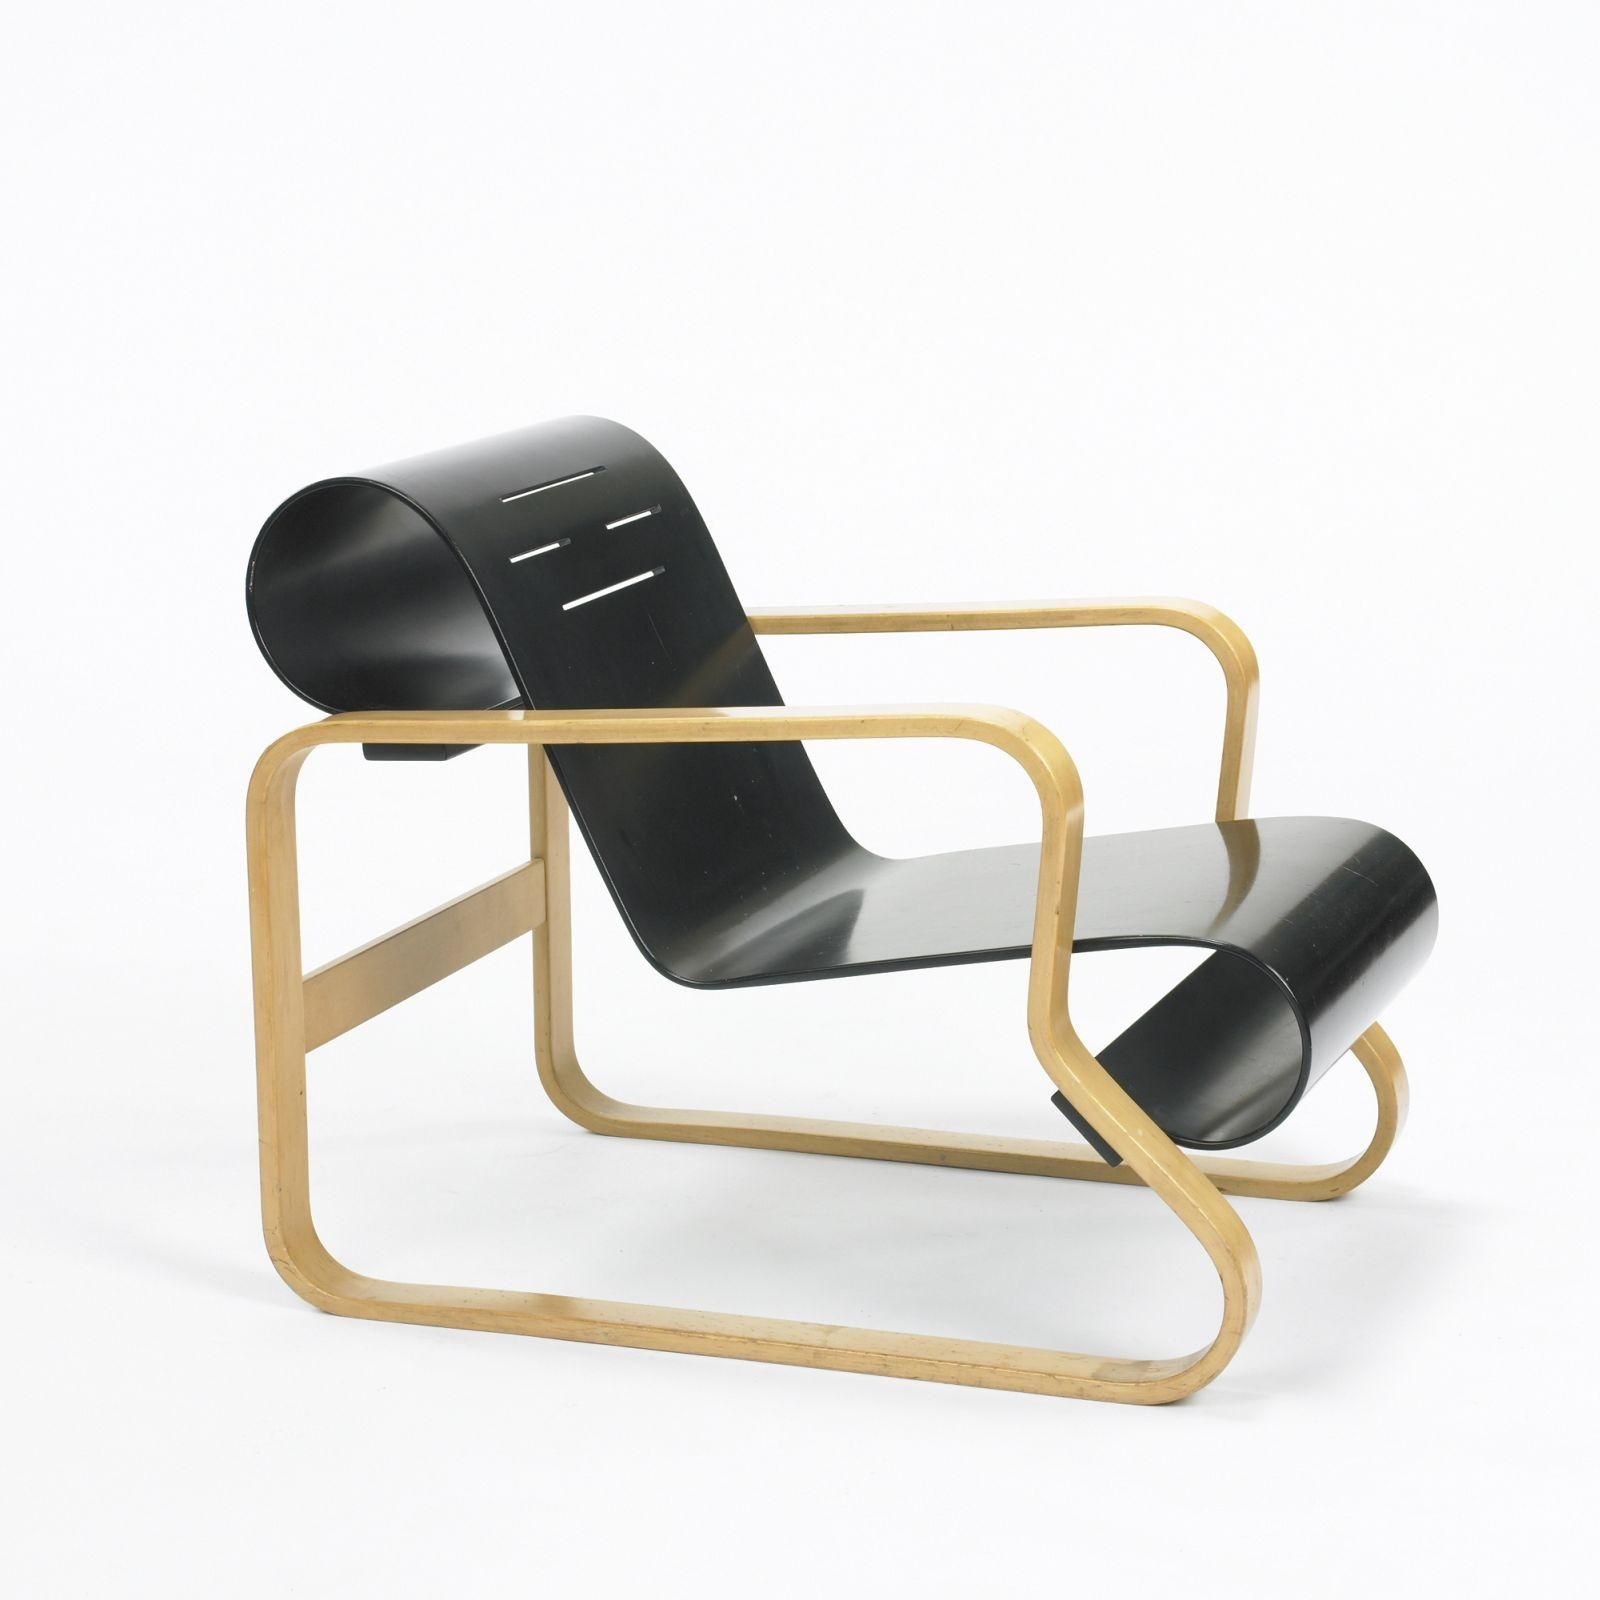 Alvar aalto paimio armchair furniture lighting for Alvar aalto chaise